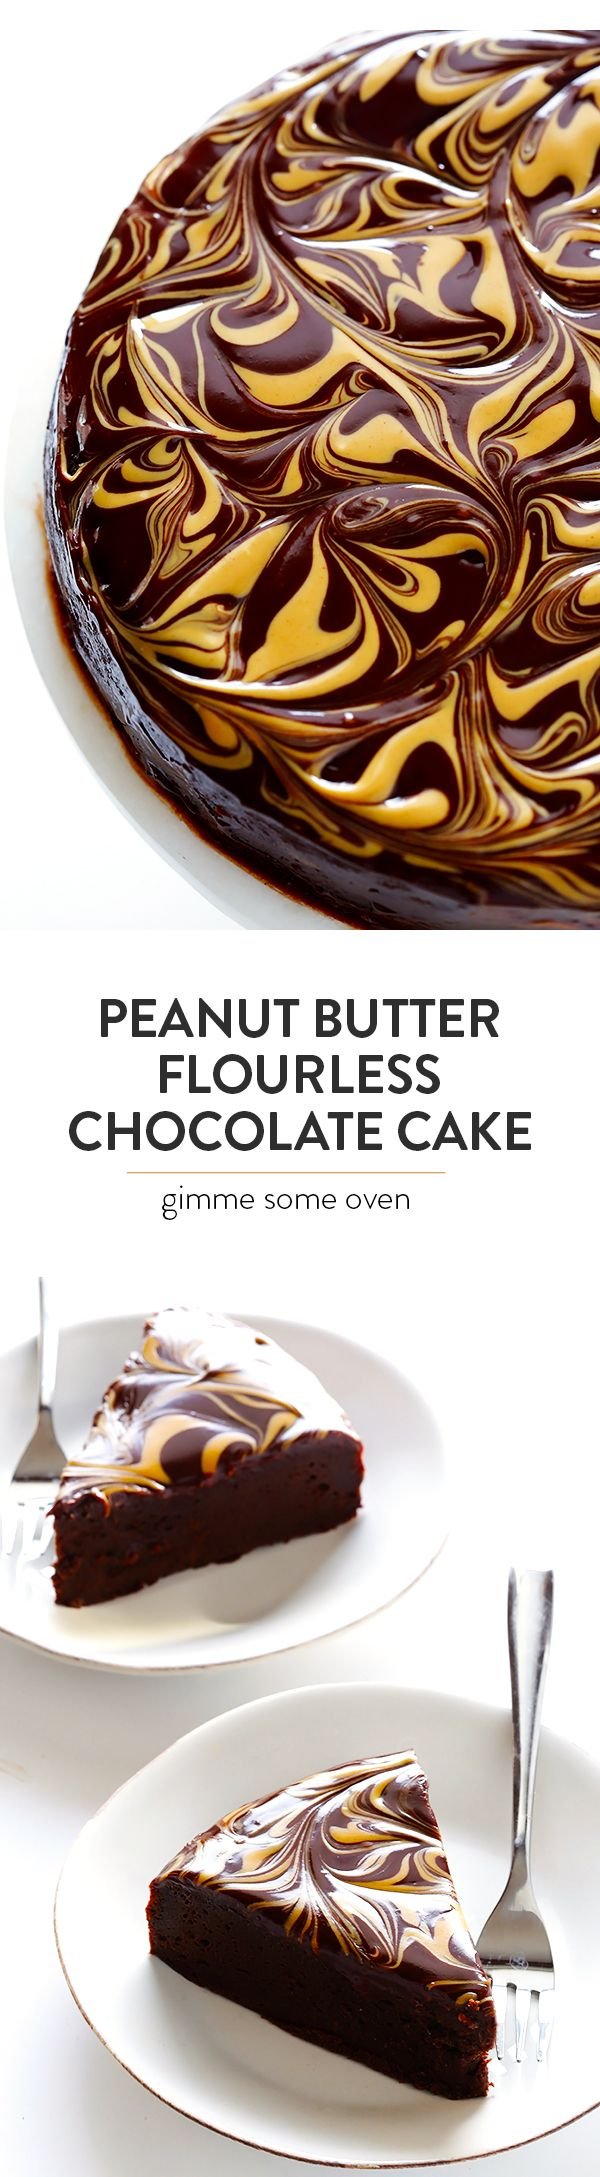 Best 20+ Flourless chocolate ideas on Pinterest | Easy flourless ...